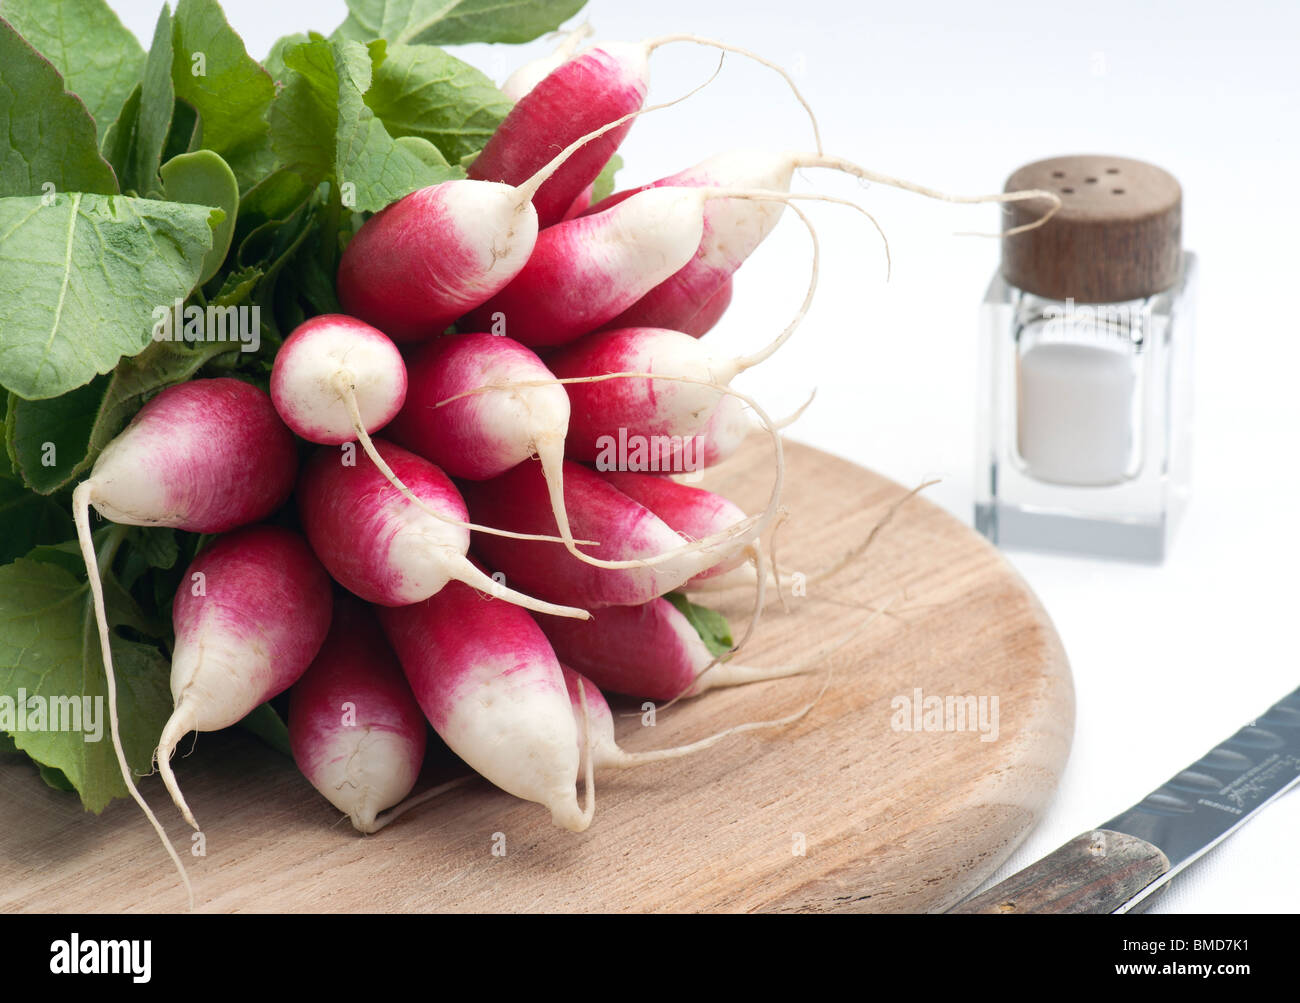 A Bunch Of Fresh French Breakfast Radish On A Wooden Chopping Board, With A Salt Pot and knife, On A White Background Stock Photo